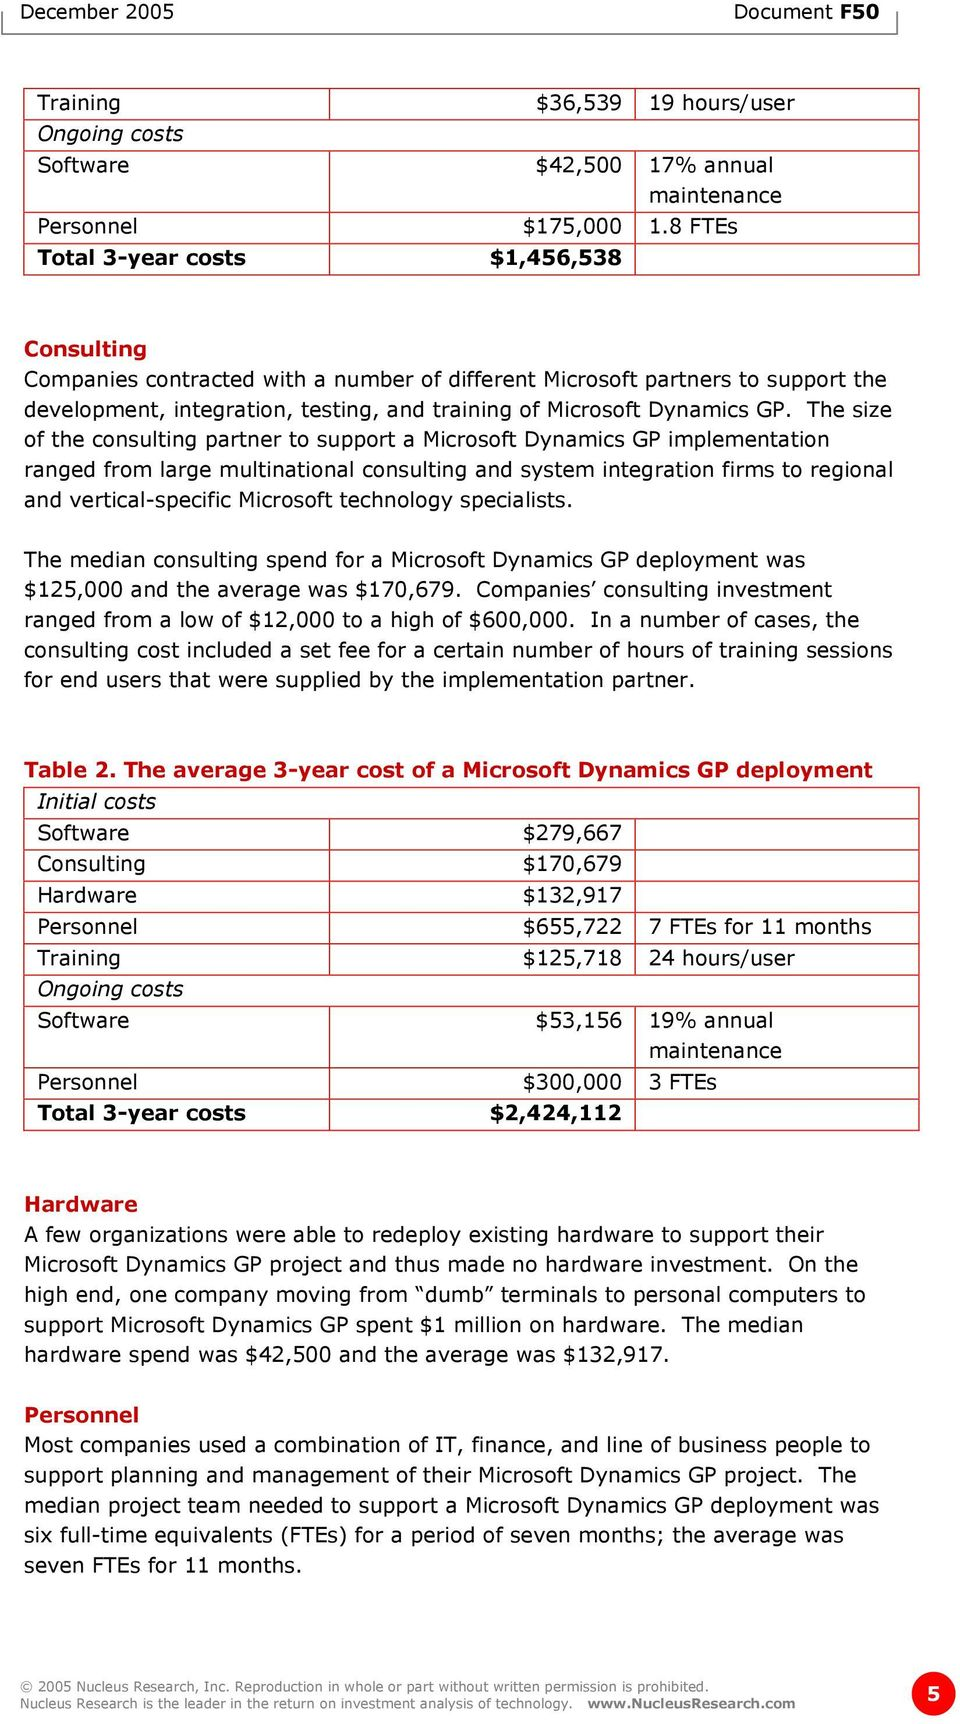 GP. The size of the consulting partner to support a Microsoft Dynamics GP implementation ranged from large multinational consulting and system integration firms to regional and vertical-specific